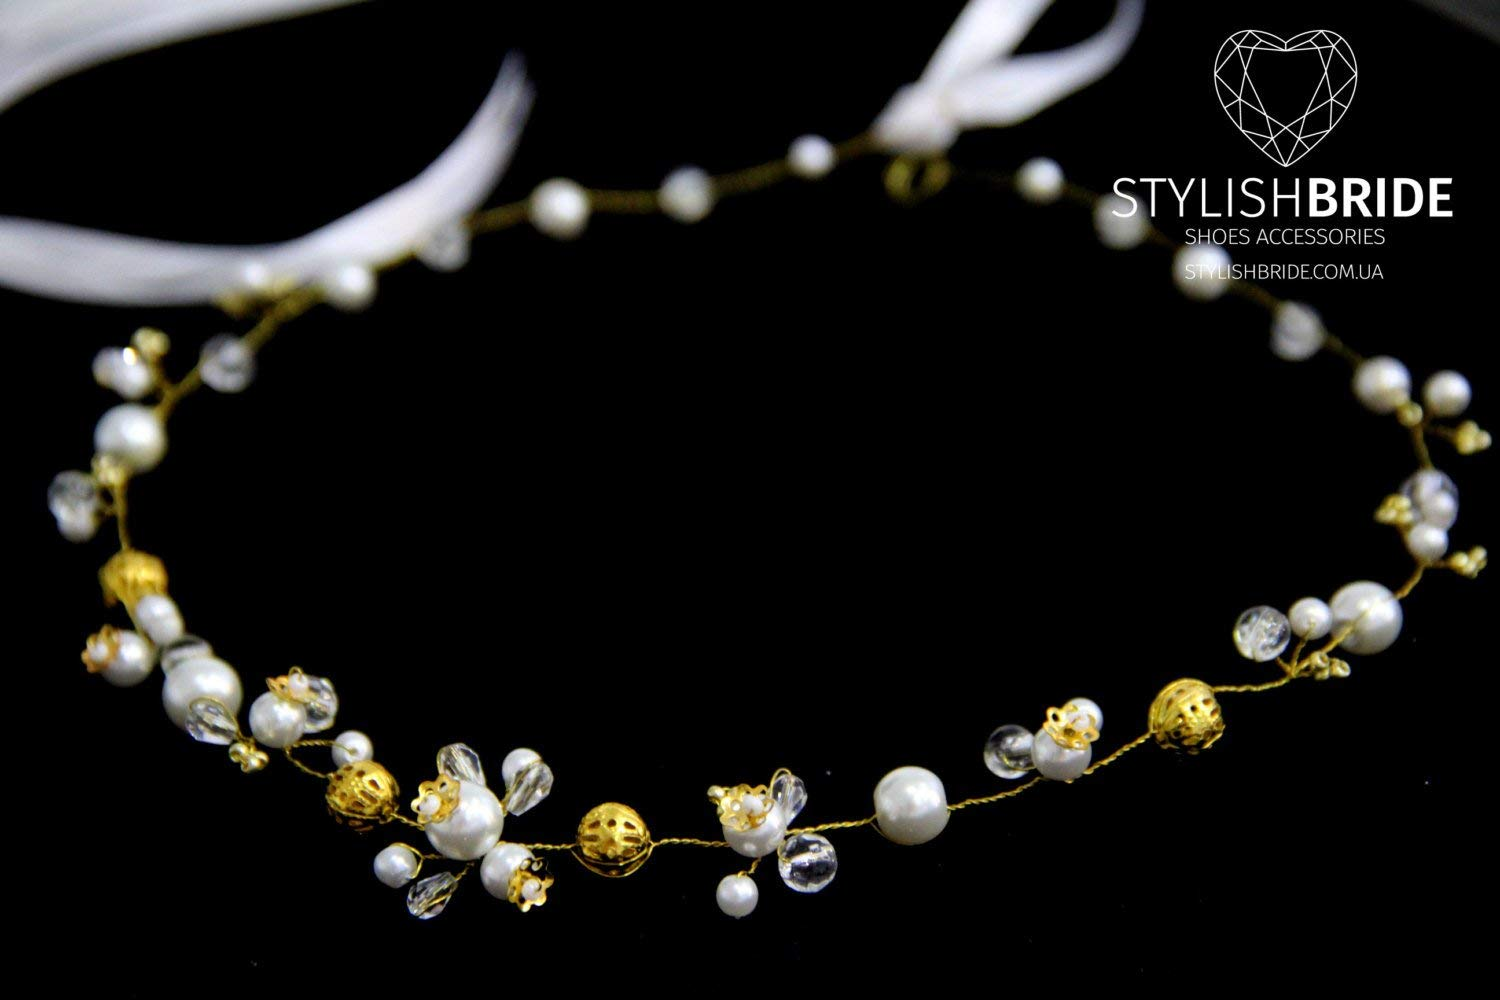 Wedding Gold Pearl Crystal Hair Vine, Crystal Hair Vine, Pearl Hair Accessories, Pearl Gold Vine, Bridal Hairpiece, Bridal Gold Hair Vine